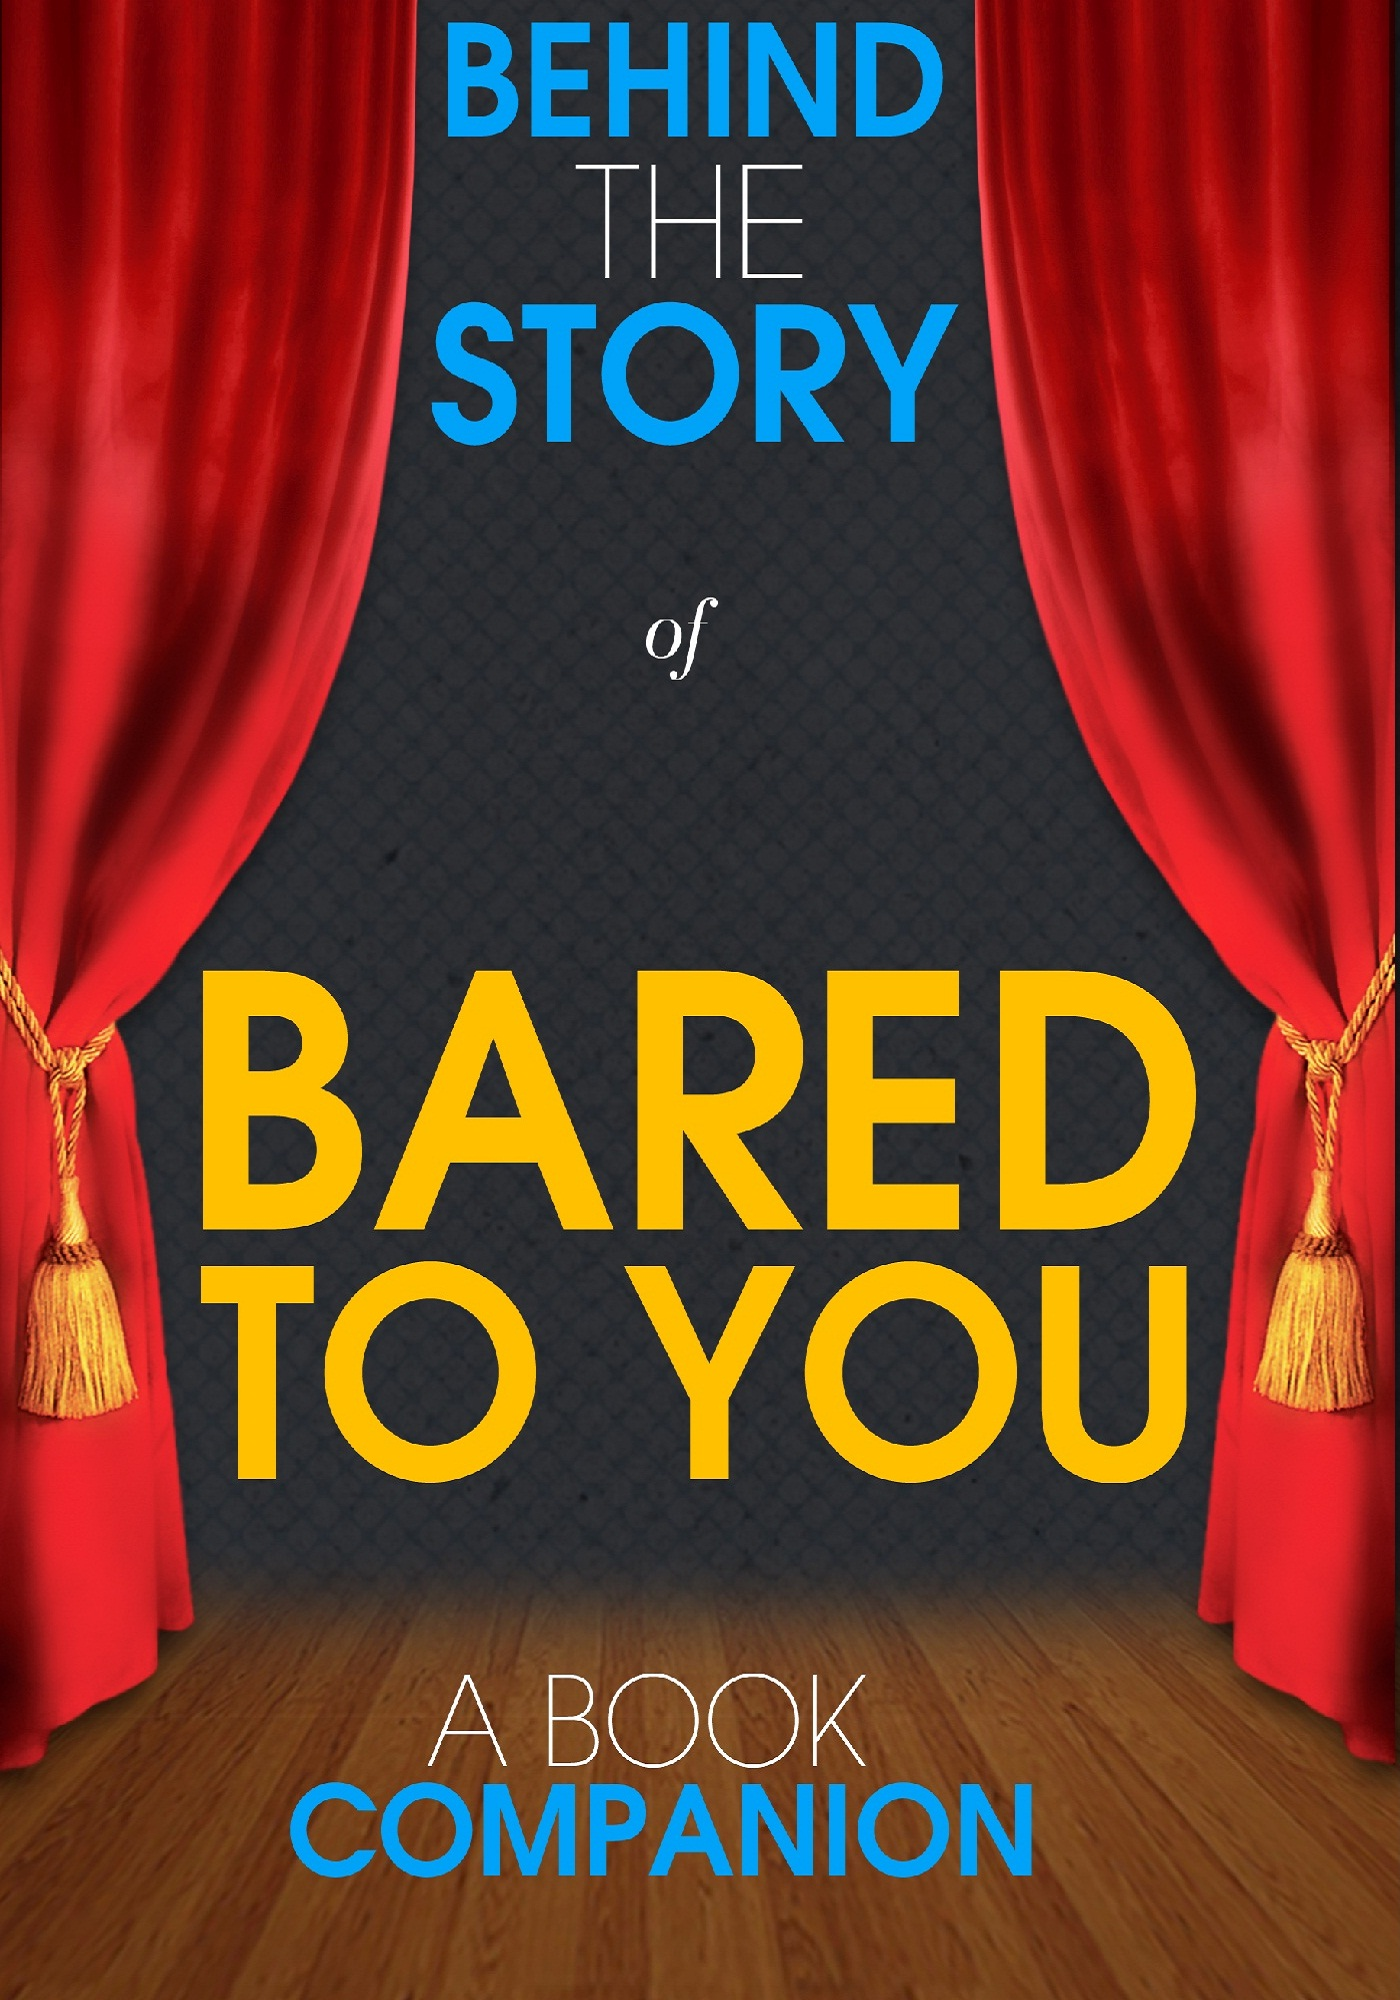 Behind the Story™ Books - Bared to You - Behind the Story (A Book Companion)